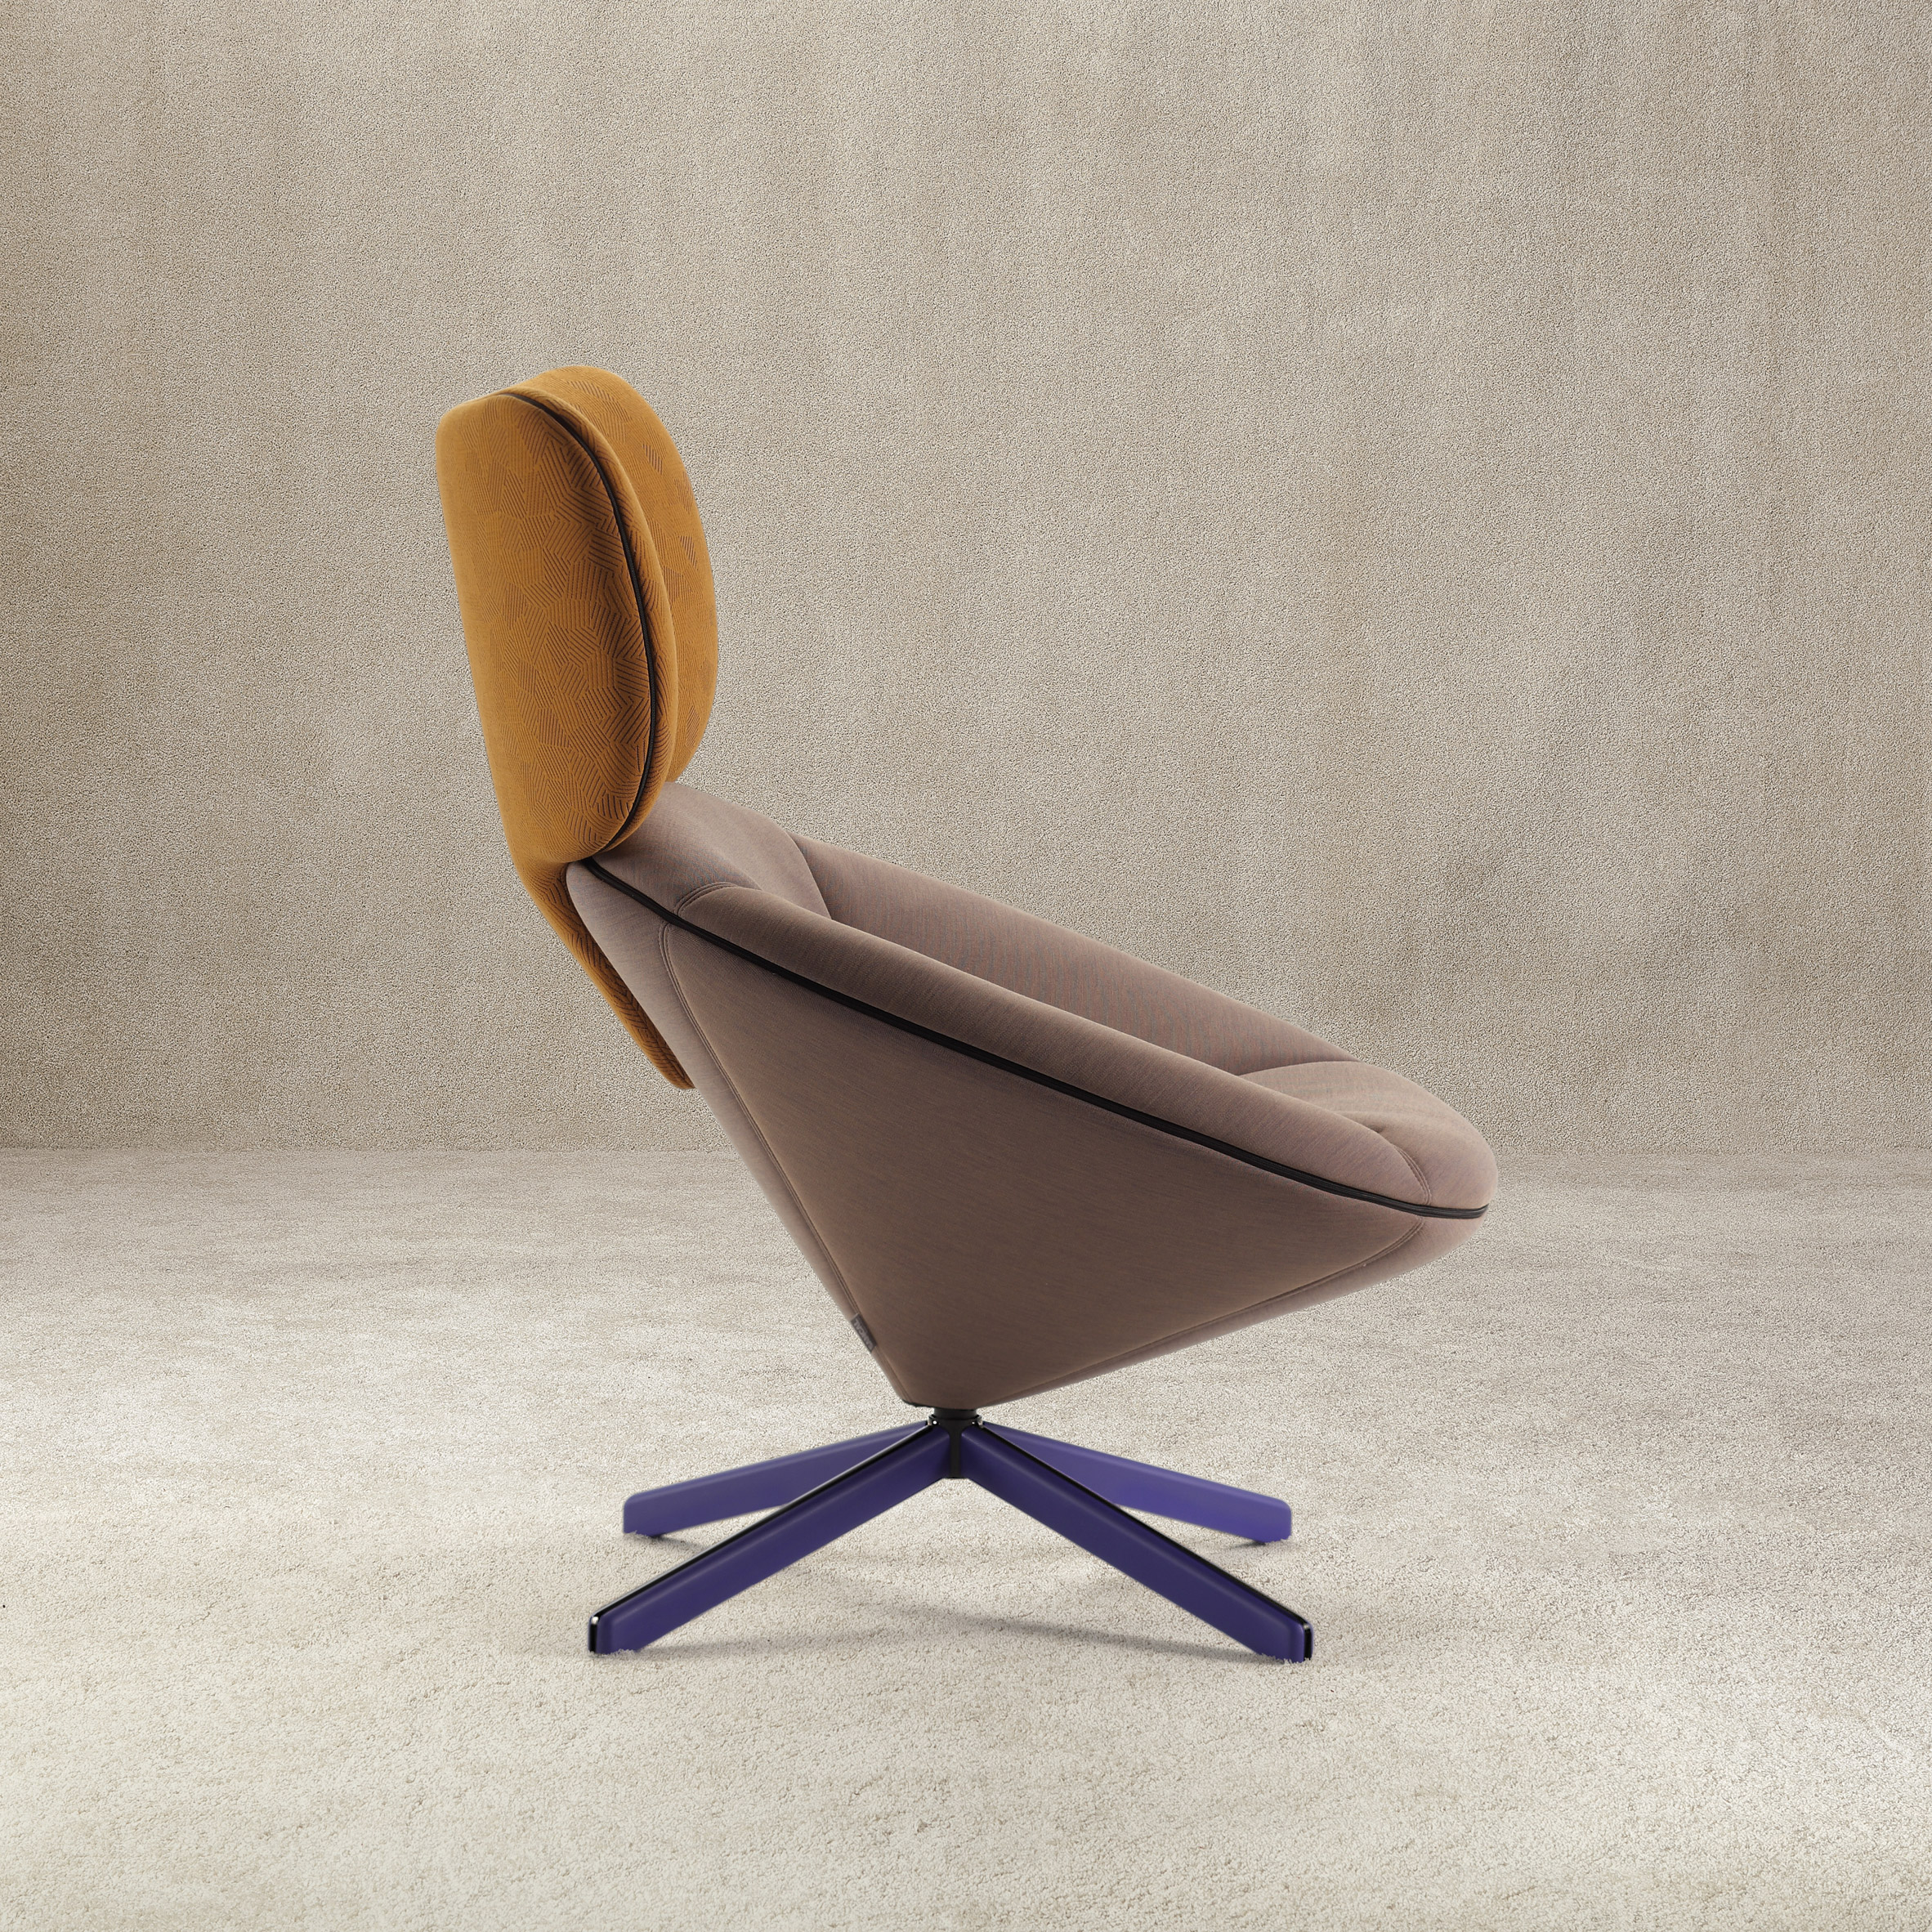 Chair In Spanish Nadadora Models Tortuga Chair For Sancal On Tortoise Shell